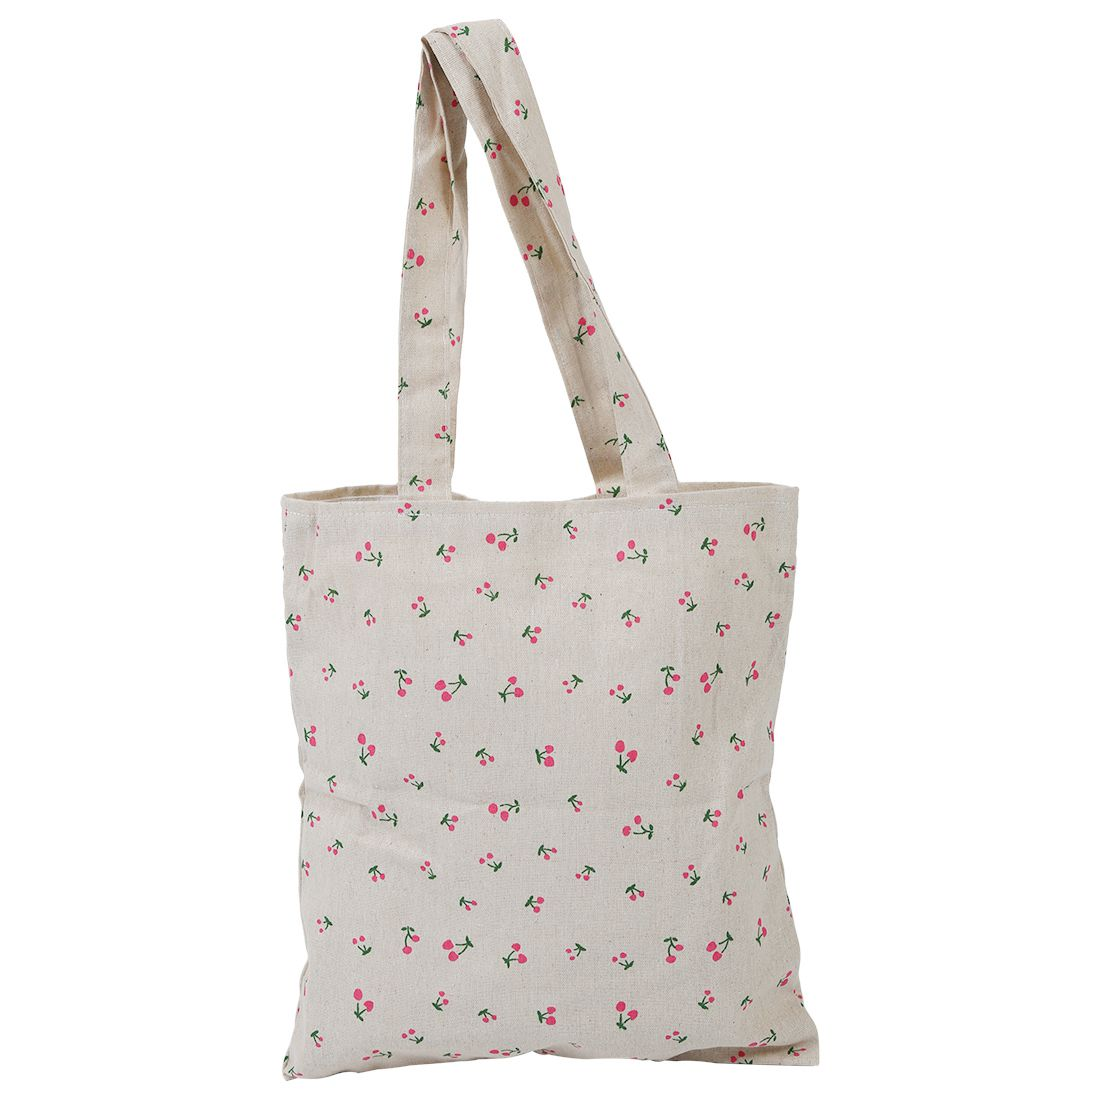 5 pcs of Cherry Pattern Fluid Systems Canvas Bag